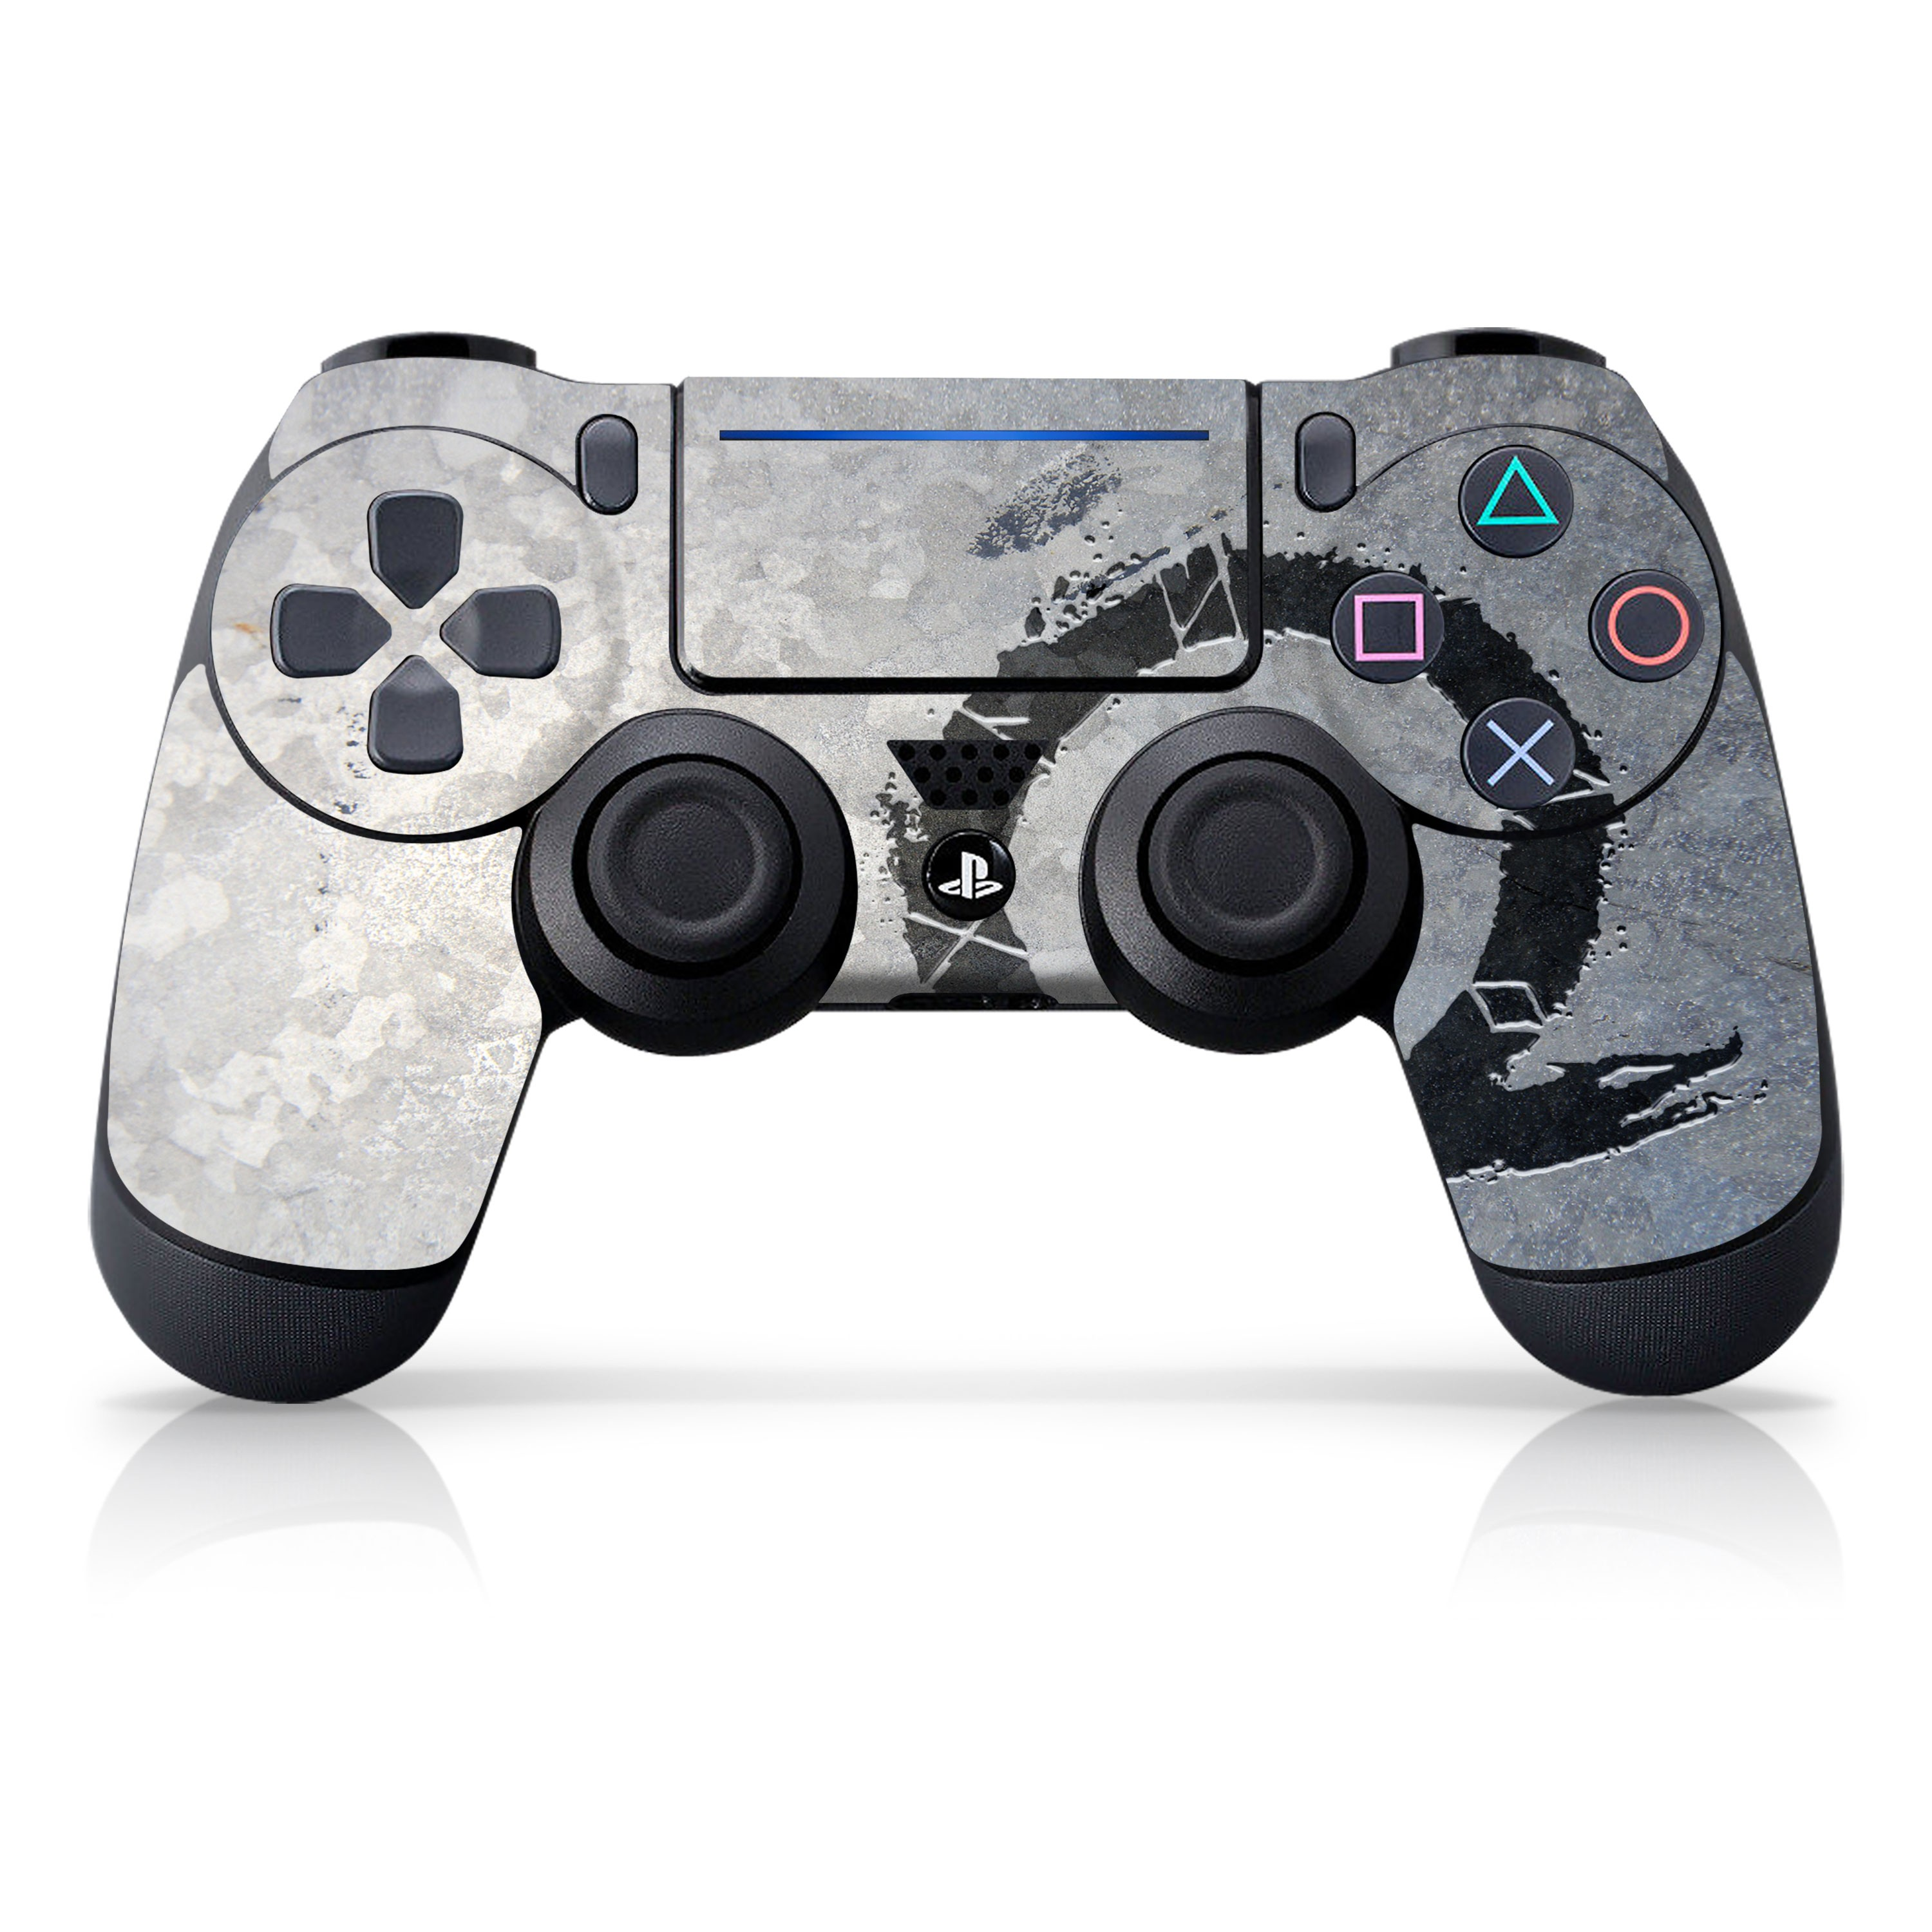 "Officially Licensed PlayStation 4 God of War DUALSHOCK 4 Wireless Controller Skin and Tech Decals ""Stone Dragon"""